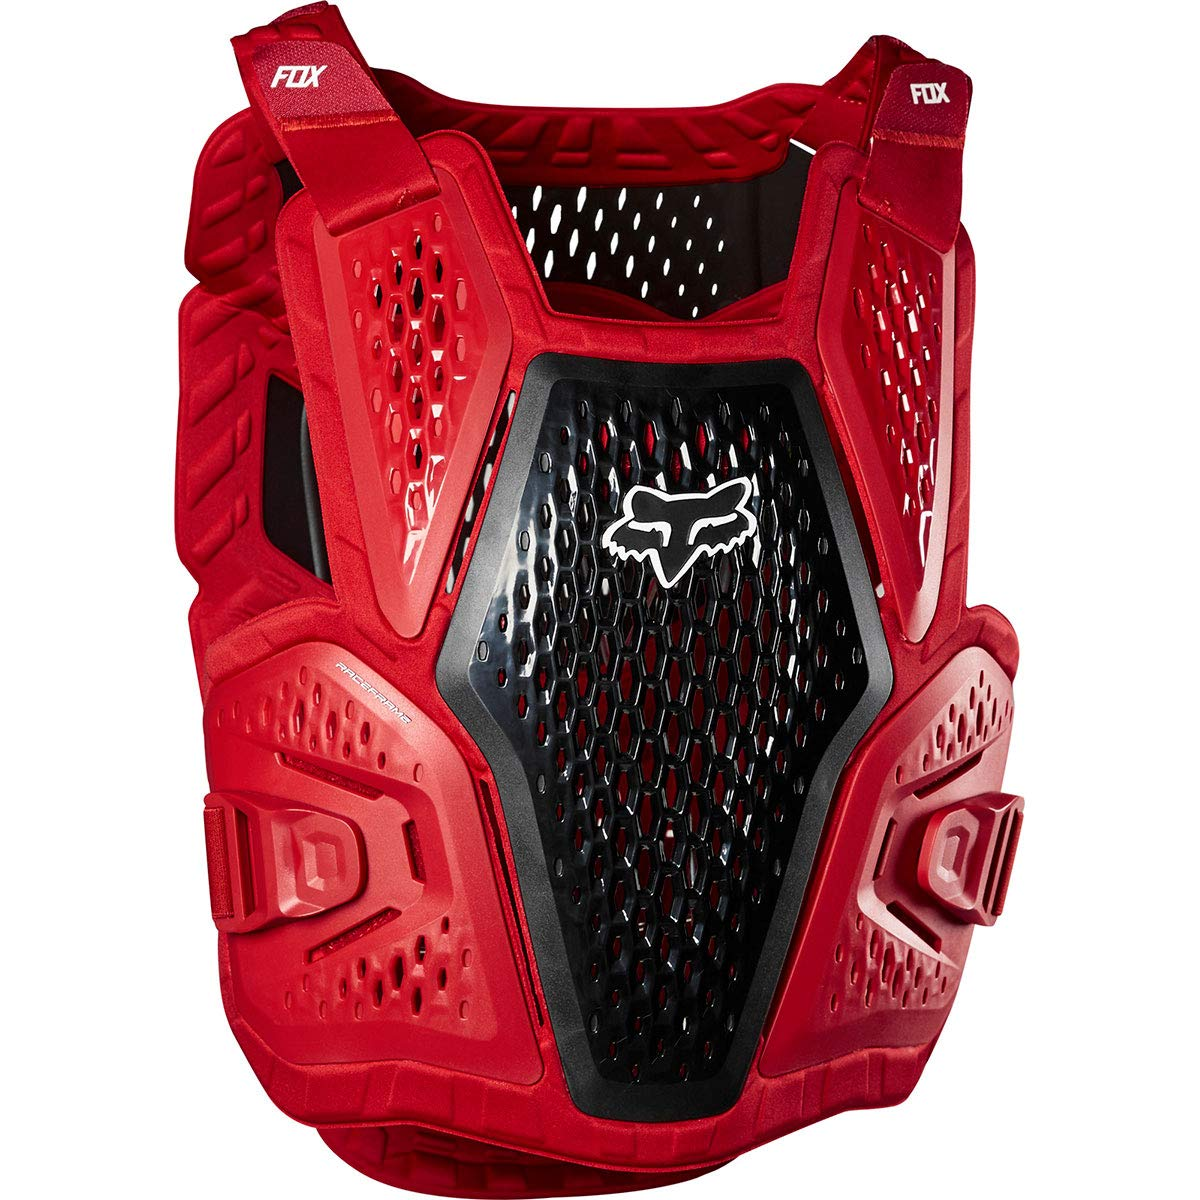 Fox Racing 2020 Youth Raceframe Roost Deflector (Flame RED)